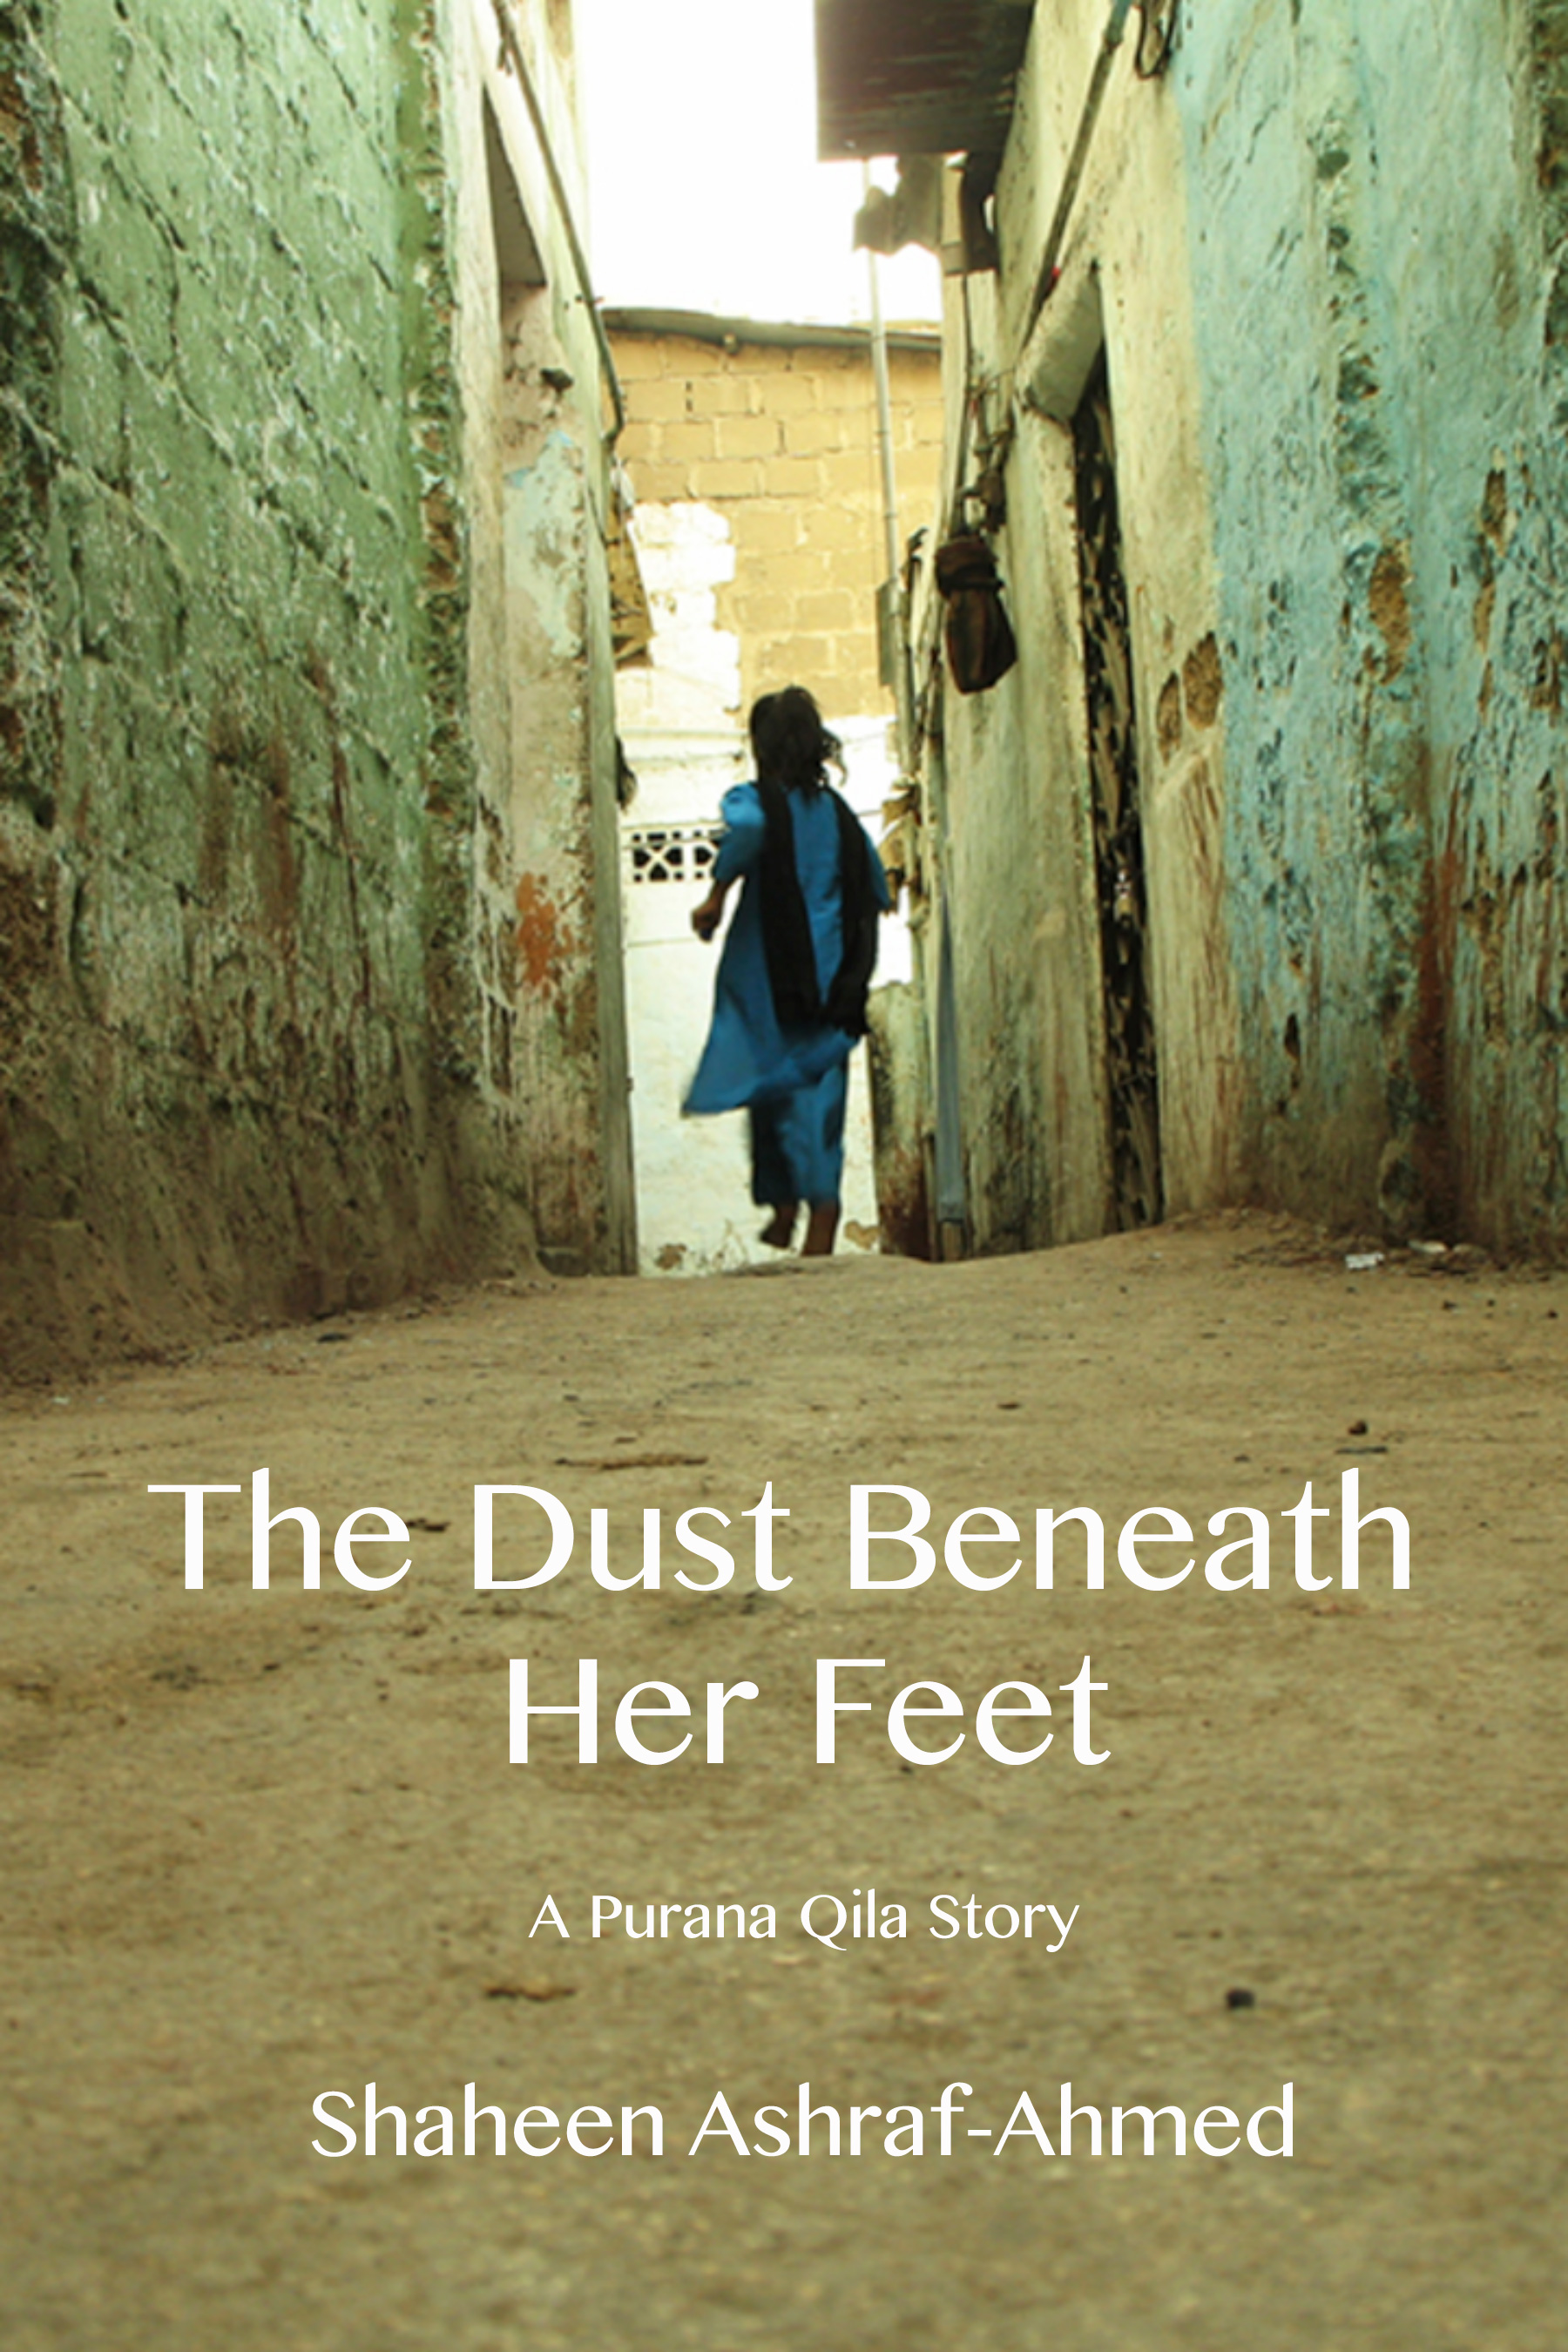 The Dust Beneath Her Feet